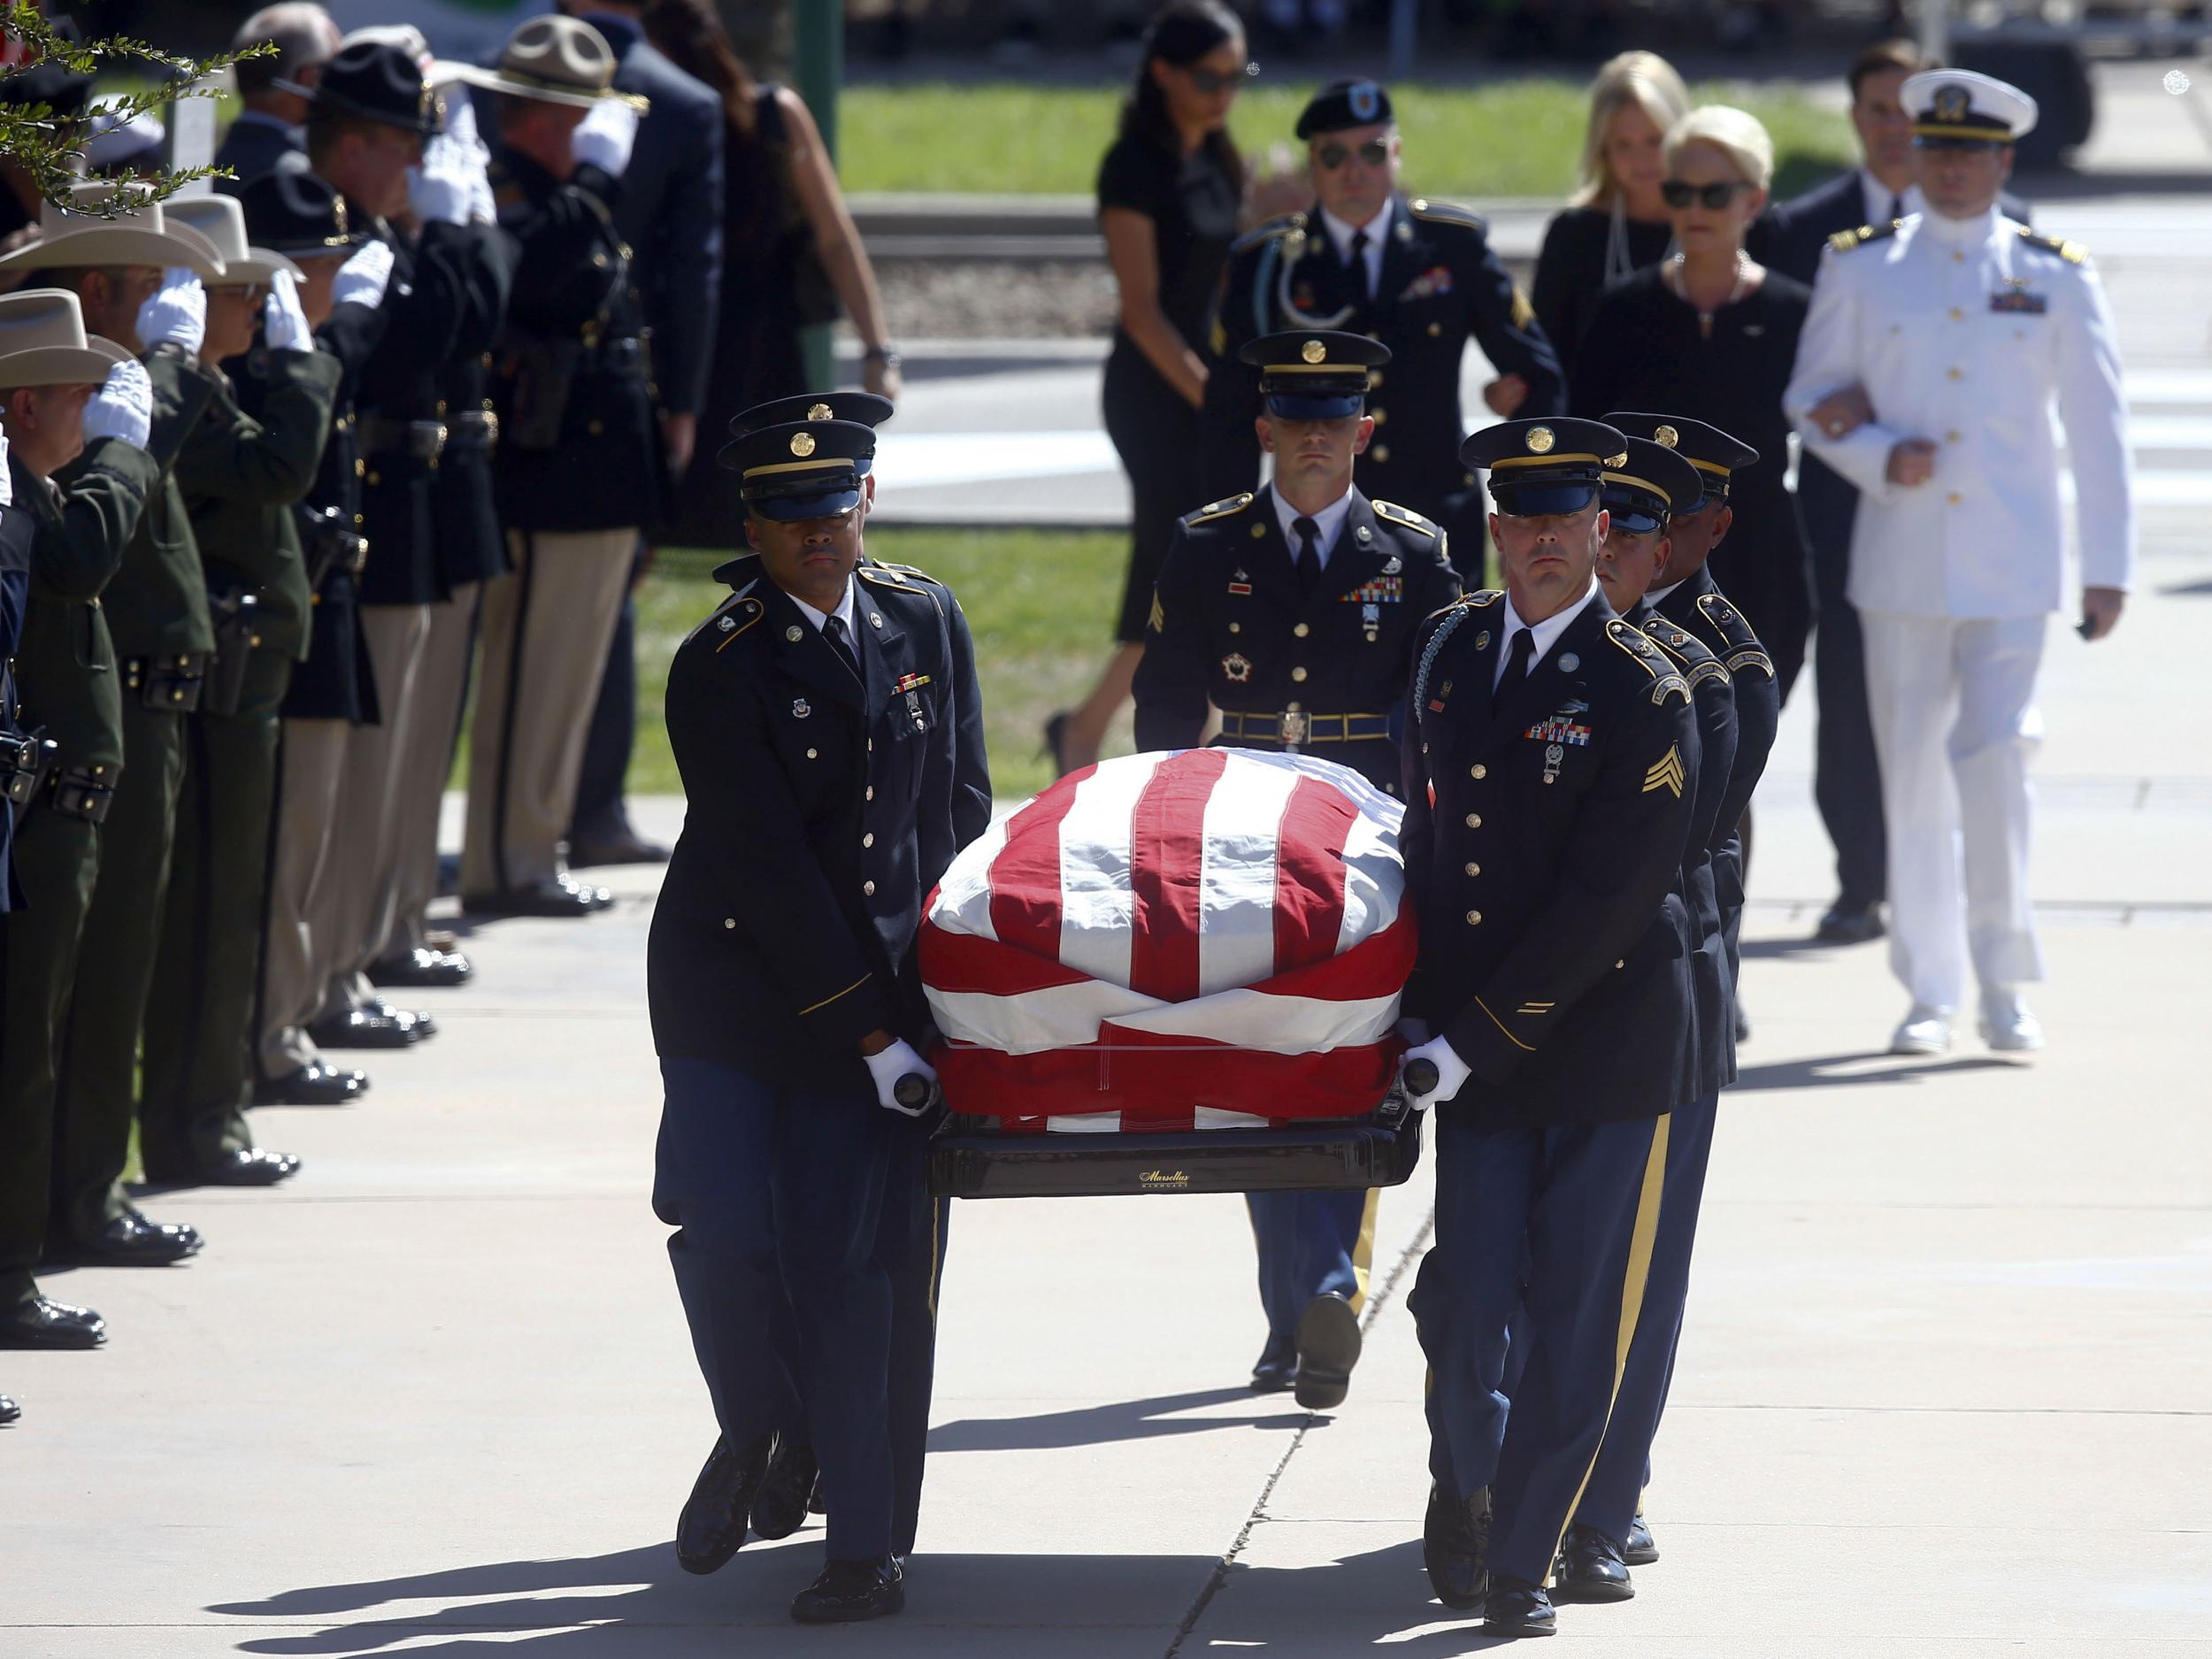 John Mccain Funeral Was Unmistakeable Rebuke To Donald Trump The